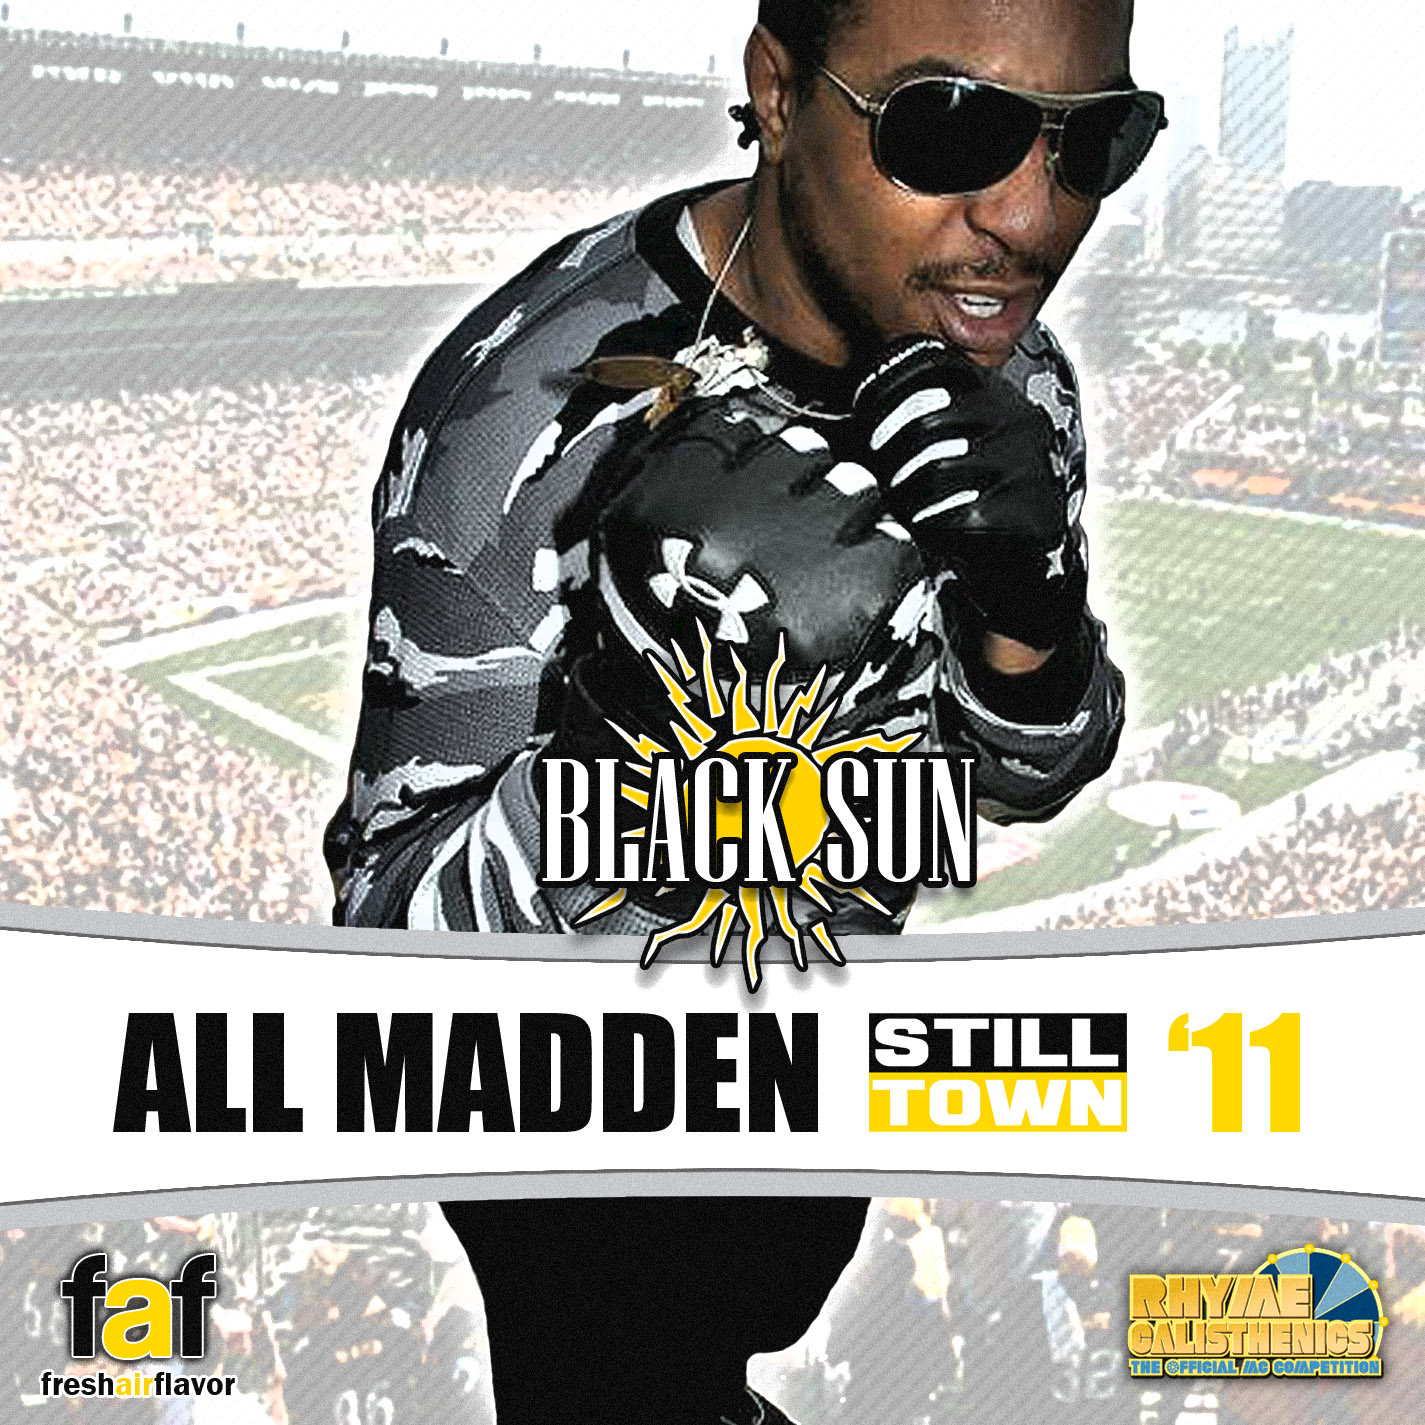 Stilltown Blacksun All Madden 11 2011